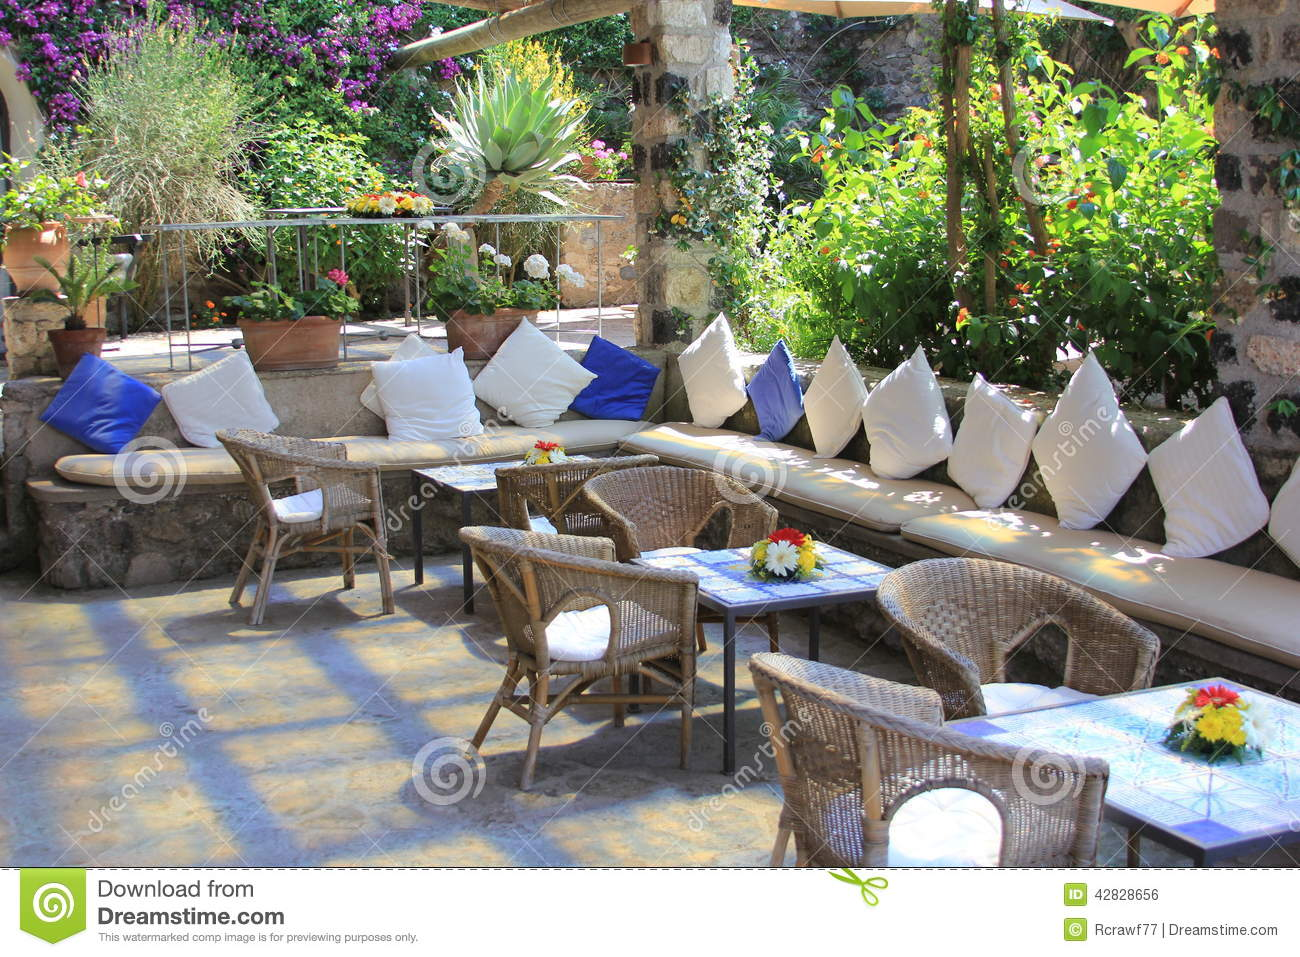 Outdoor restaurant cafe seating arrangements stock photo for Restaurants with outdoor seating